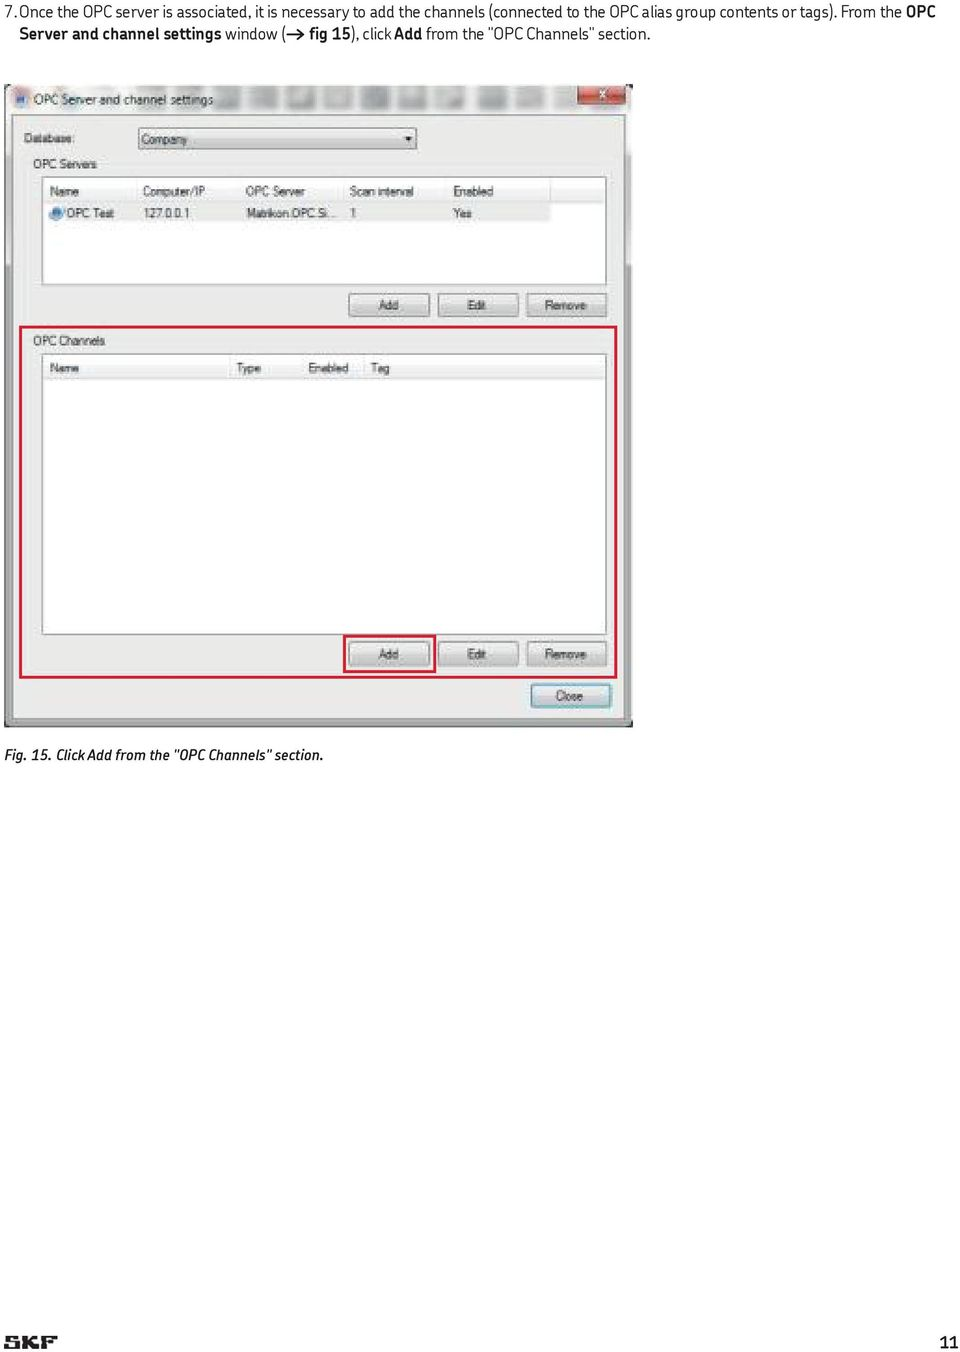 From the OPC Server and channel settings window ( fig 15), click Add